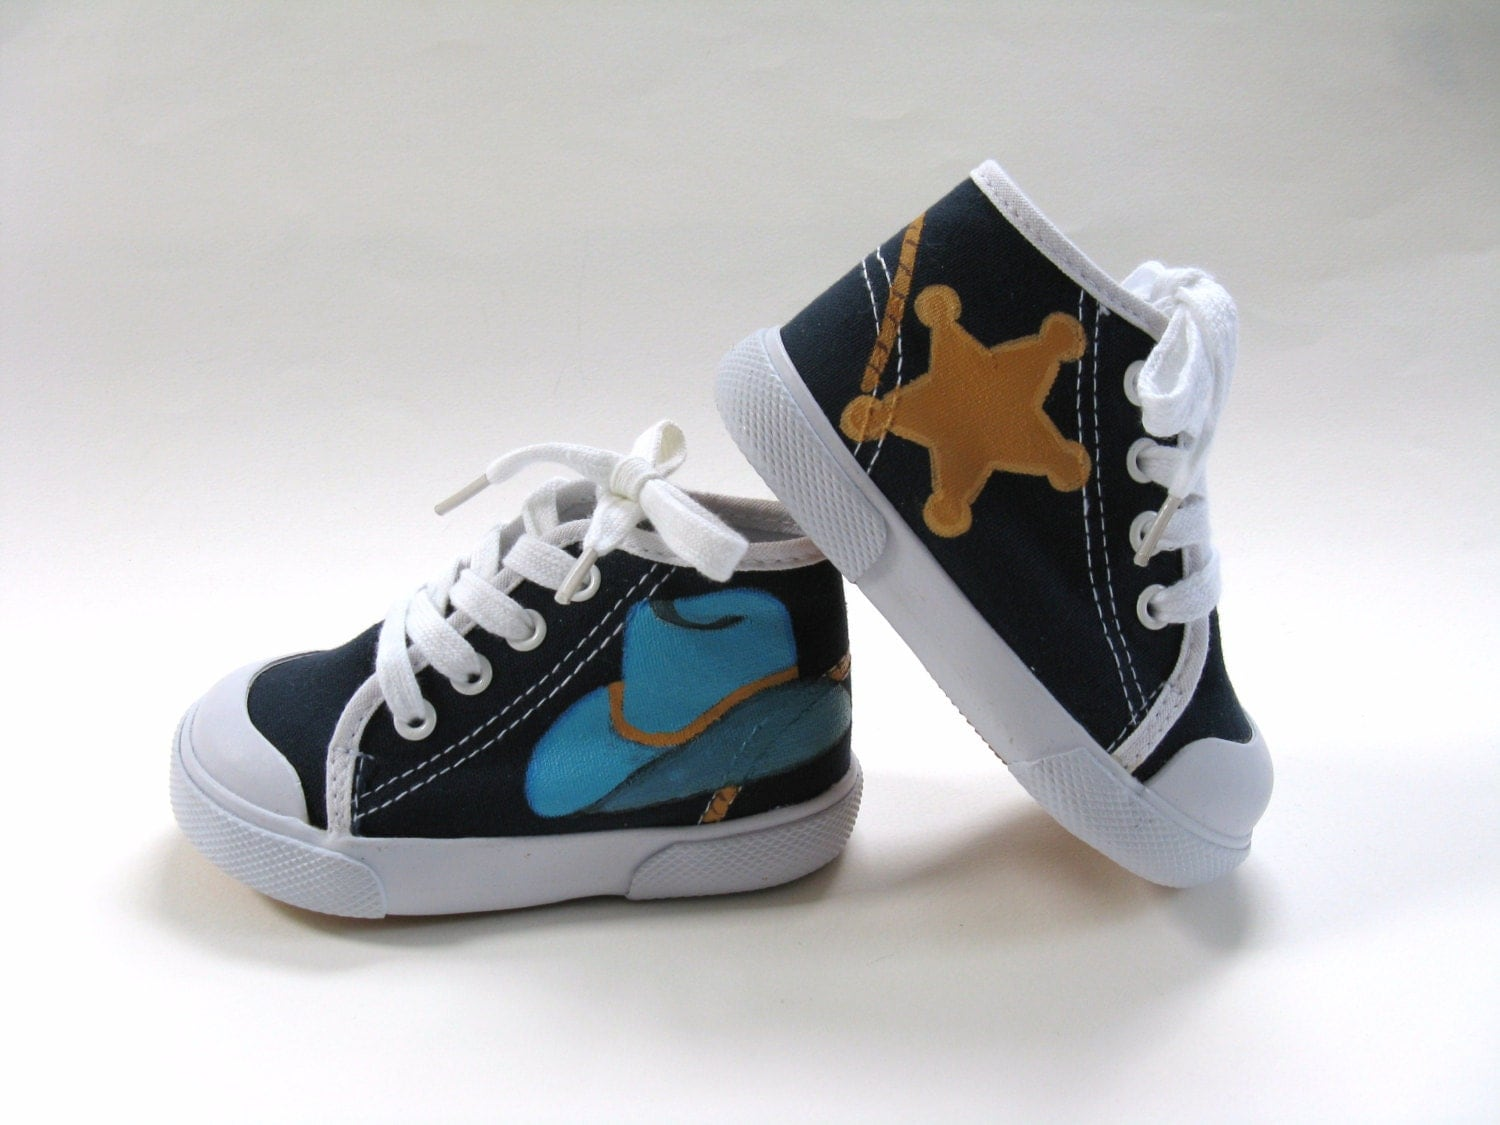 Boys Cowboy Shoes, Toddler, Birthday Party, Hand Painted, Hi Top Sneaker - boygirlboygirldesign